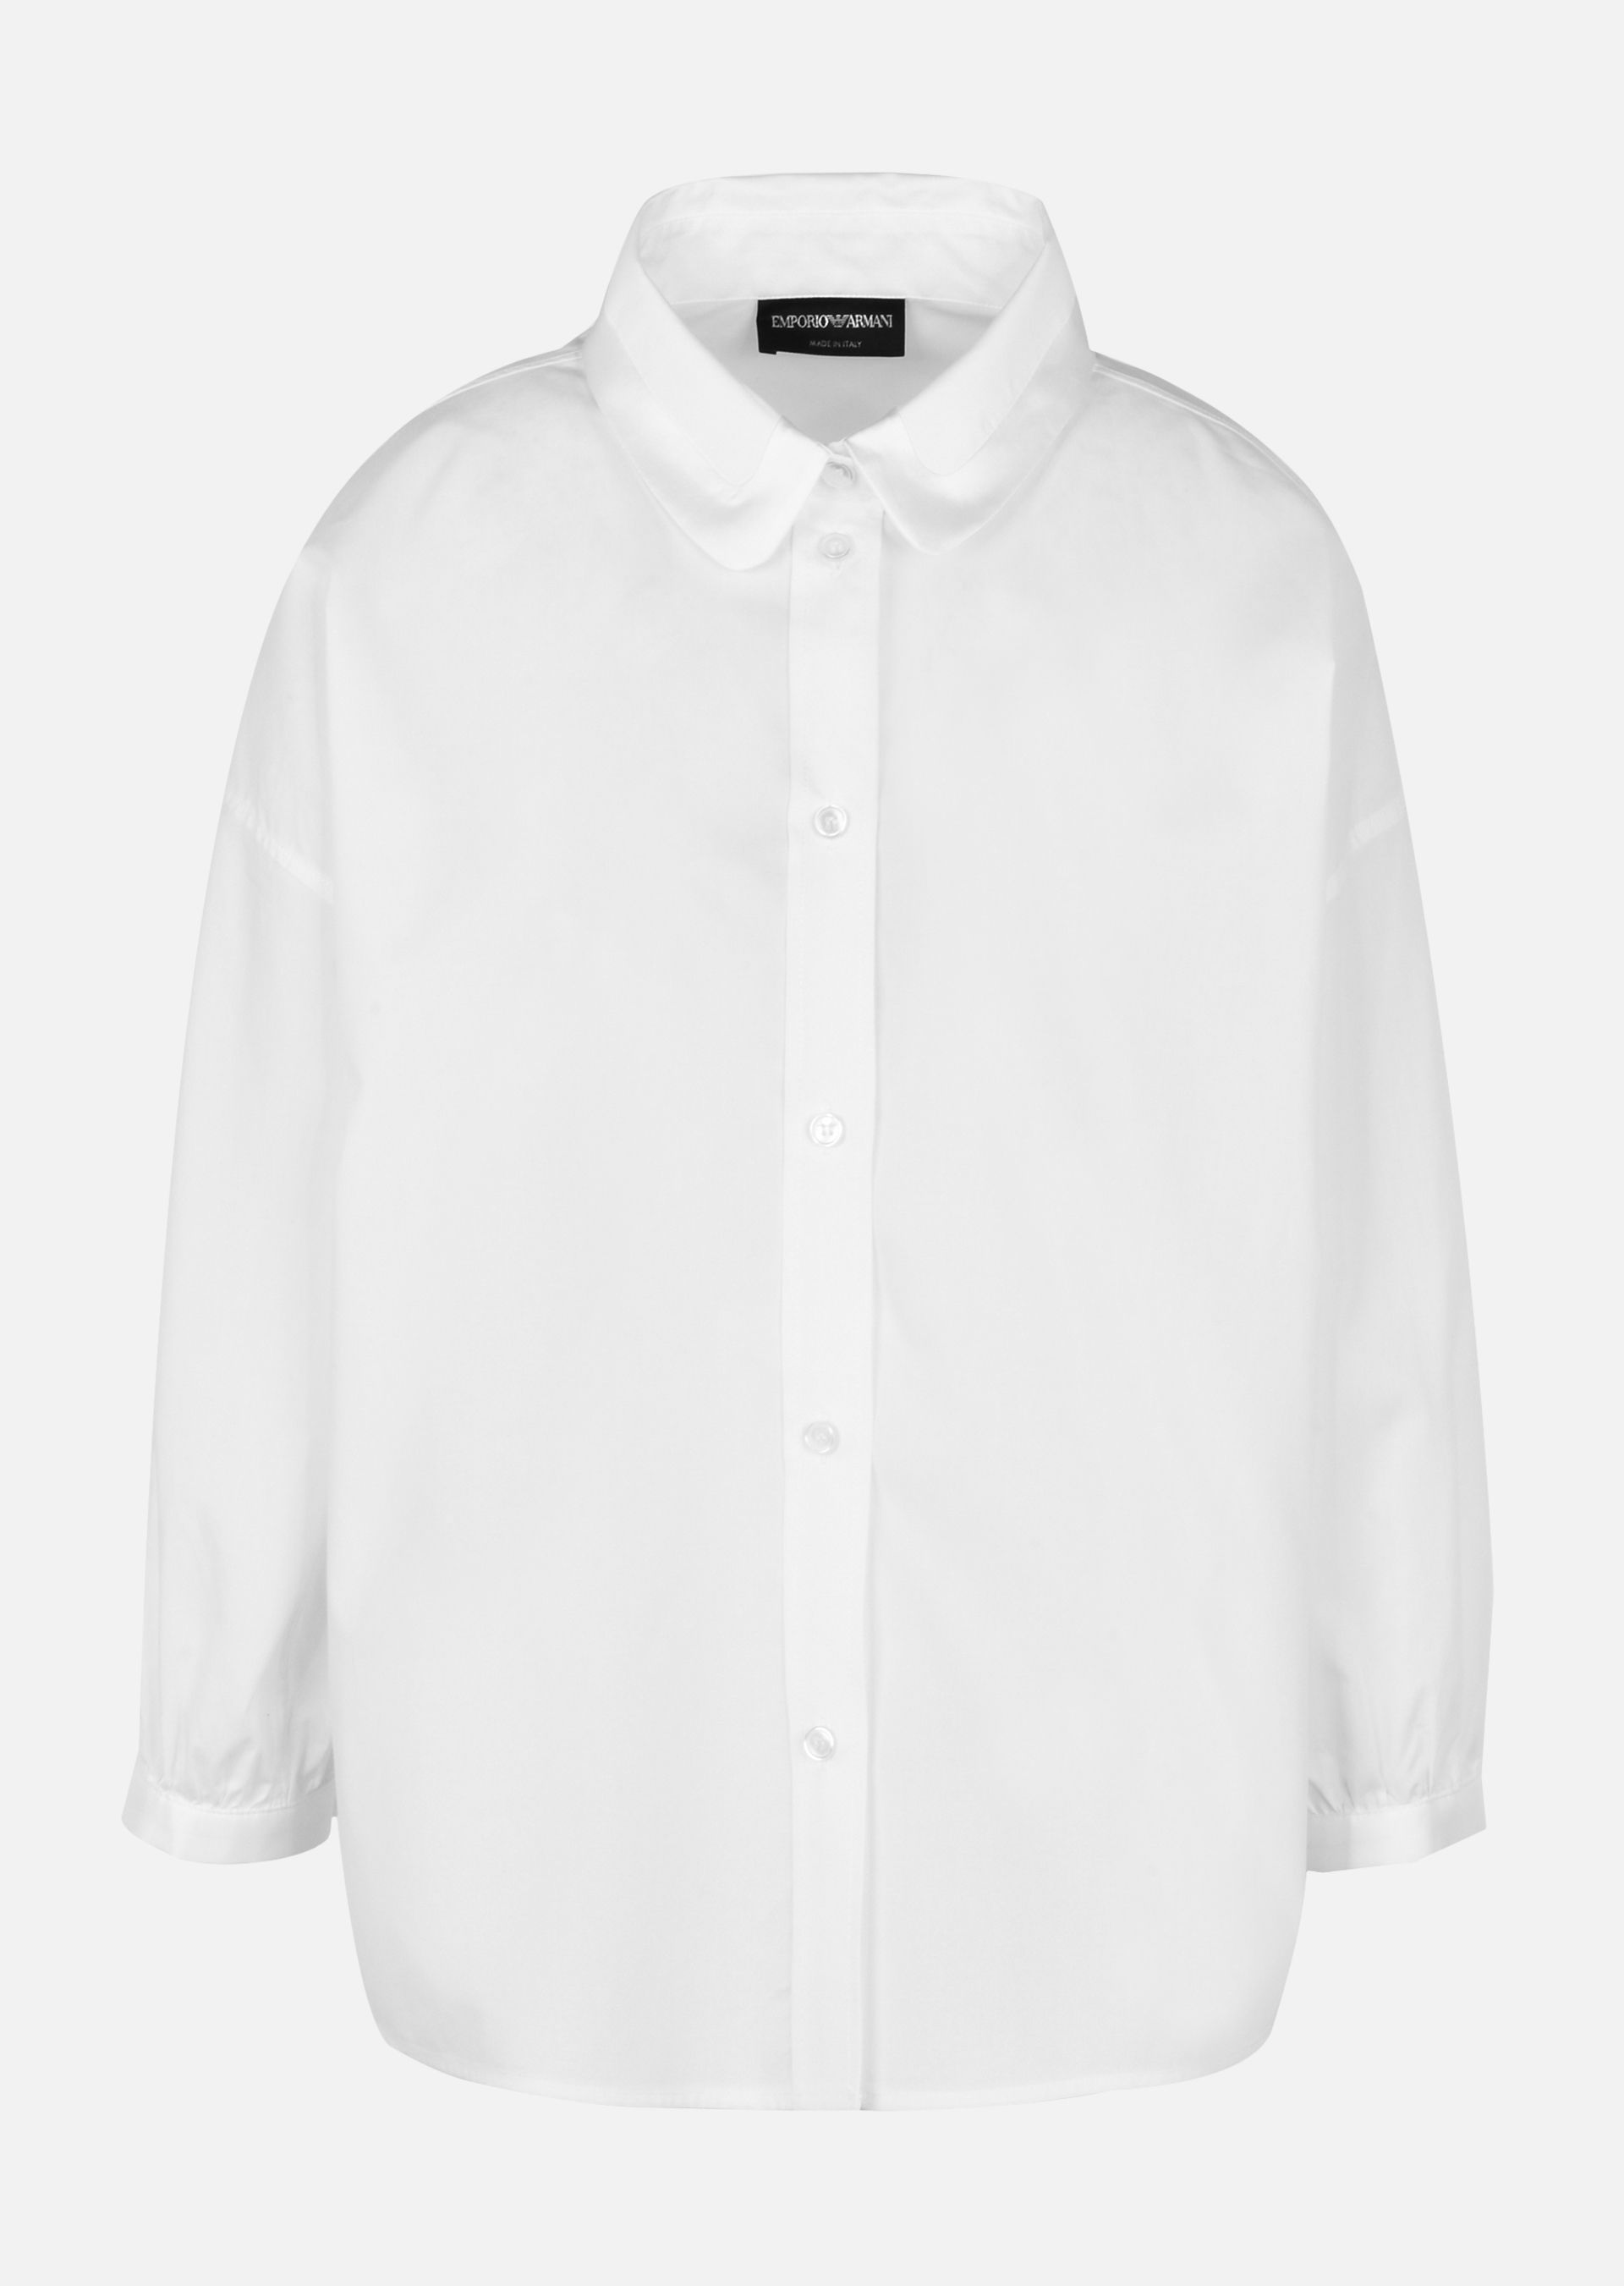 Womens Cotton Poplin Blouse Giorgio Armani Cheapest Price Online Top-Rated lNs1Rc